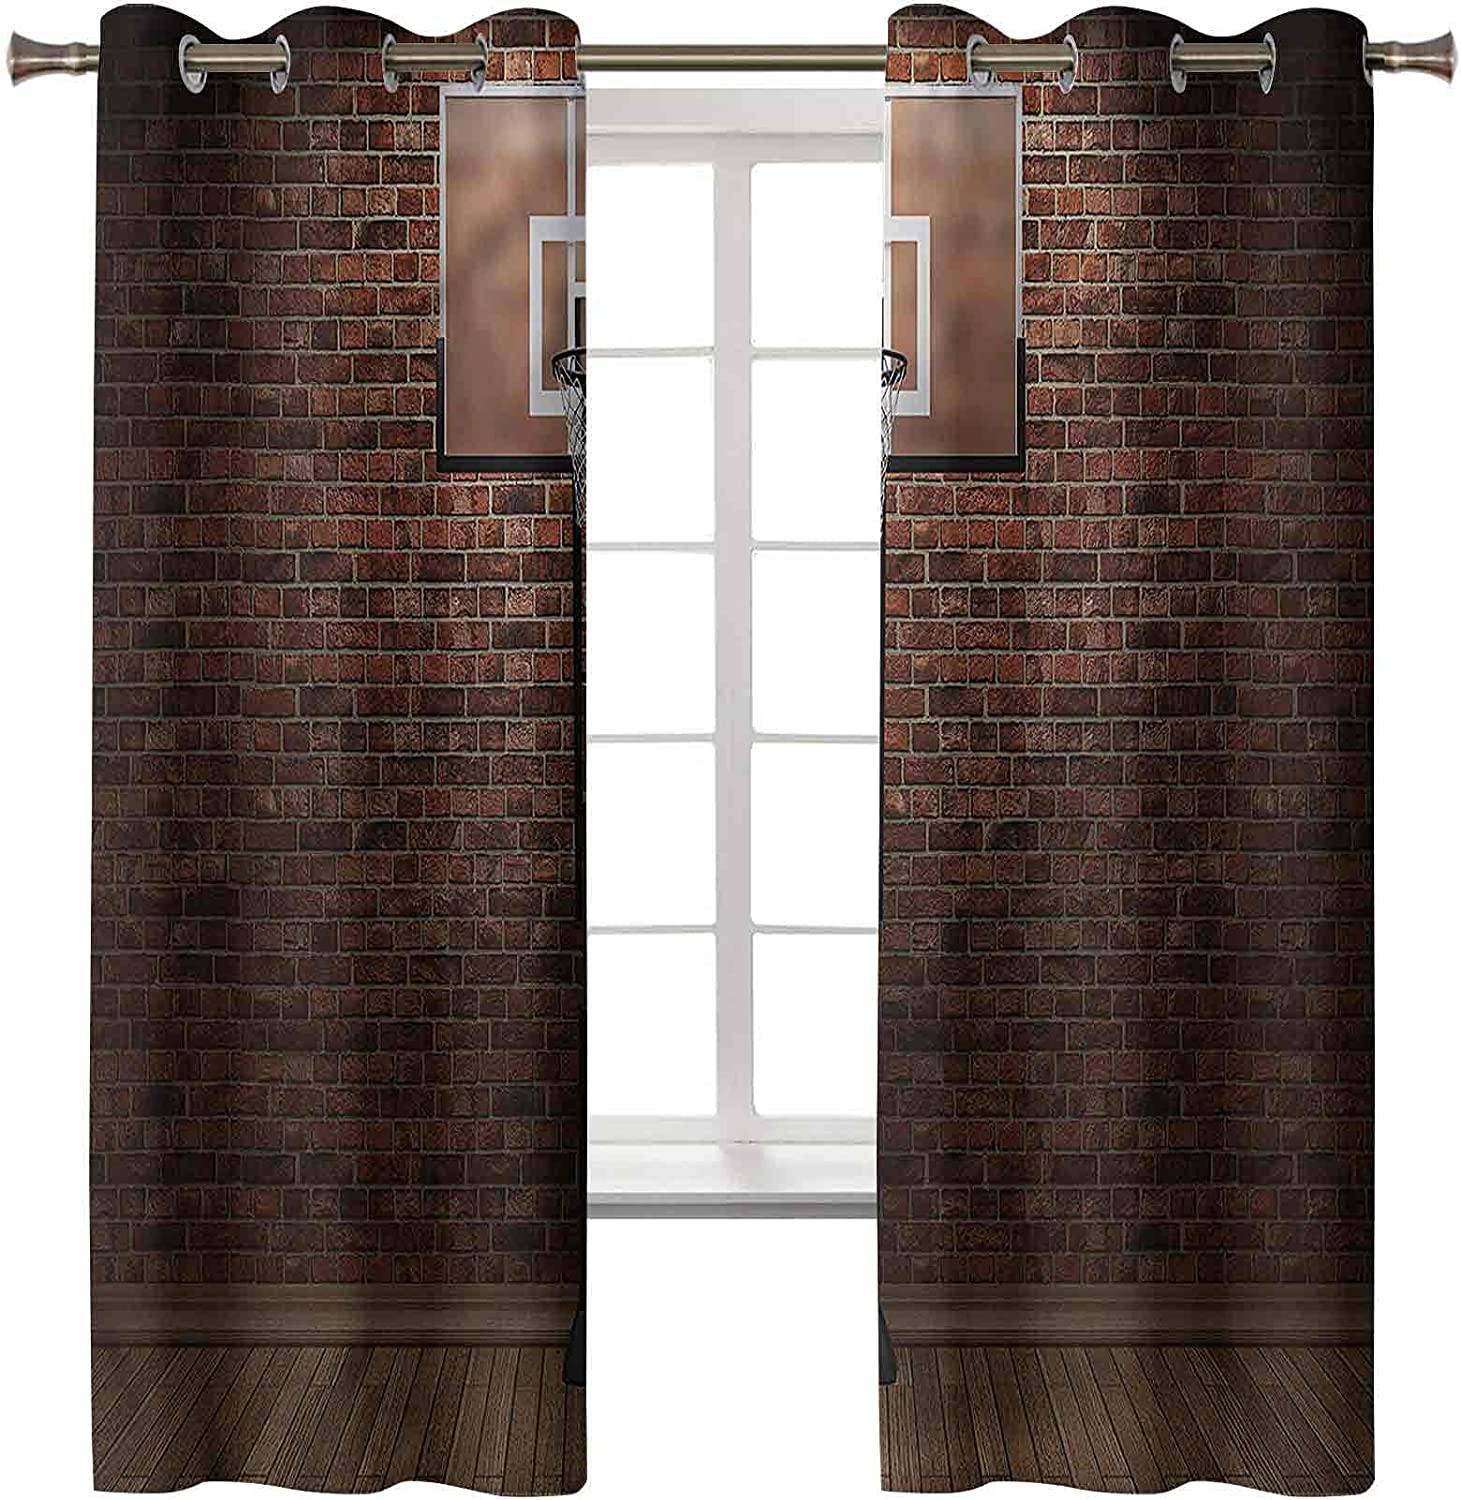 Long-awaited Basketball Black Out Curtains Set of Indefinitely 2 x 72L Inch So 42W Panels